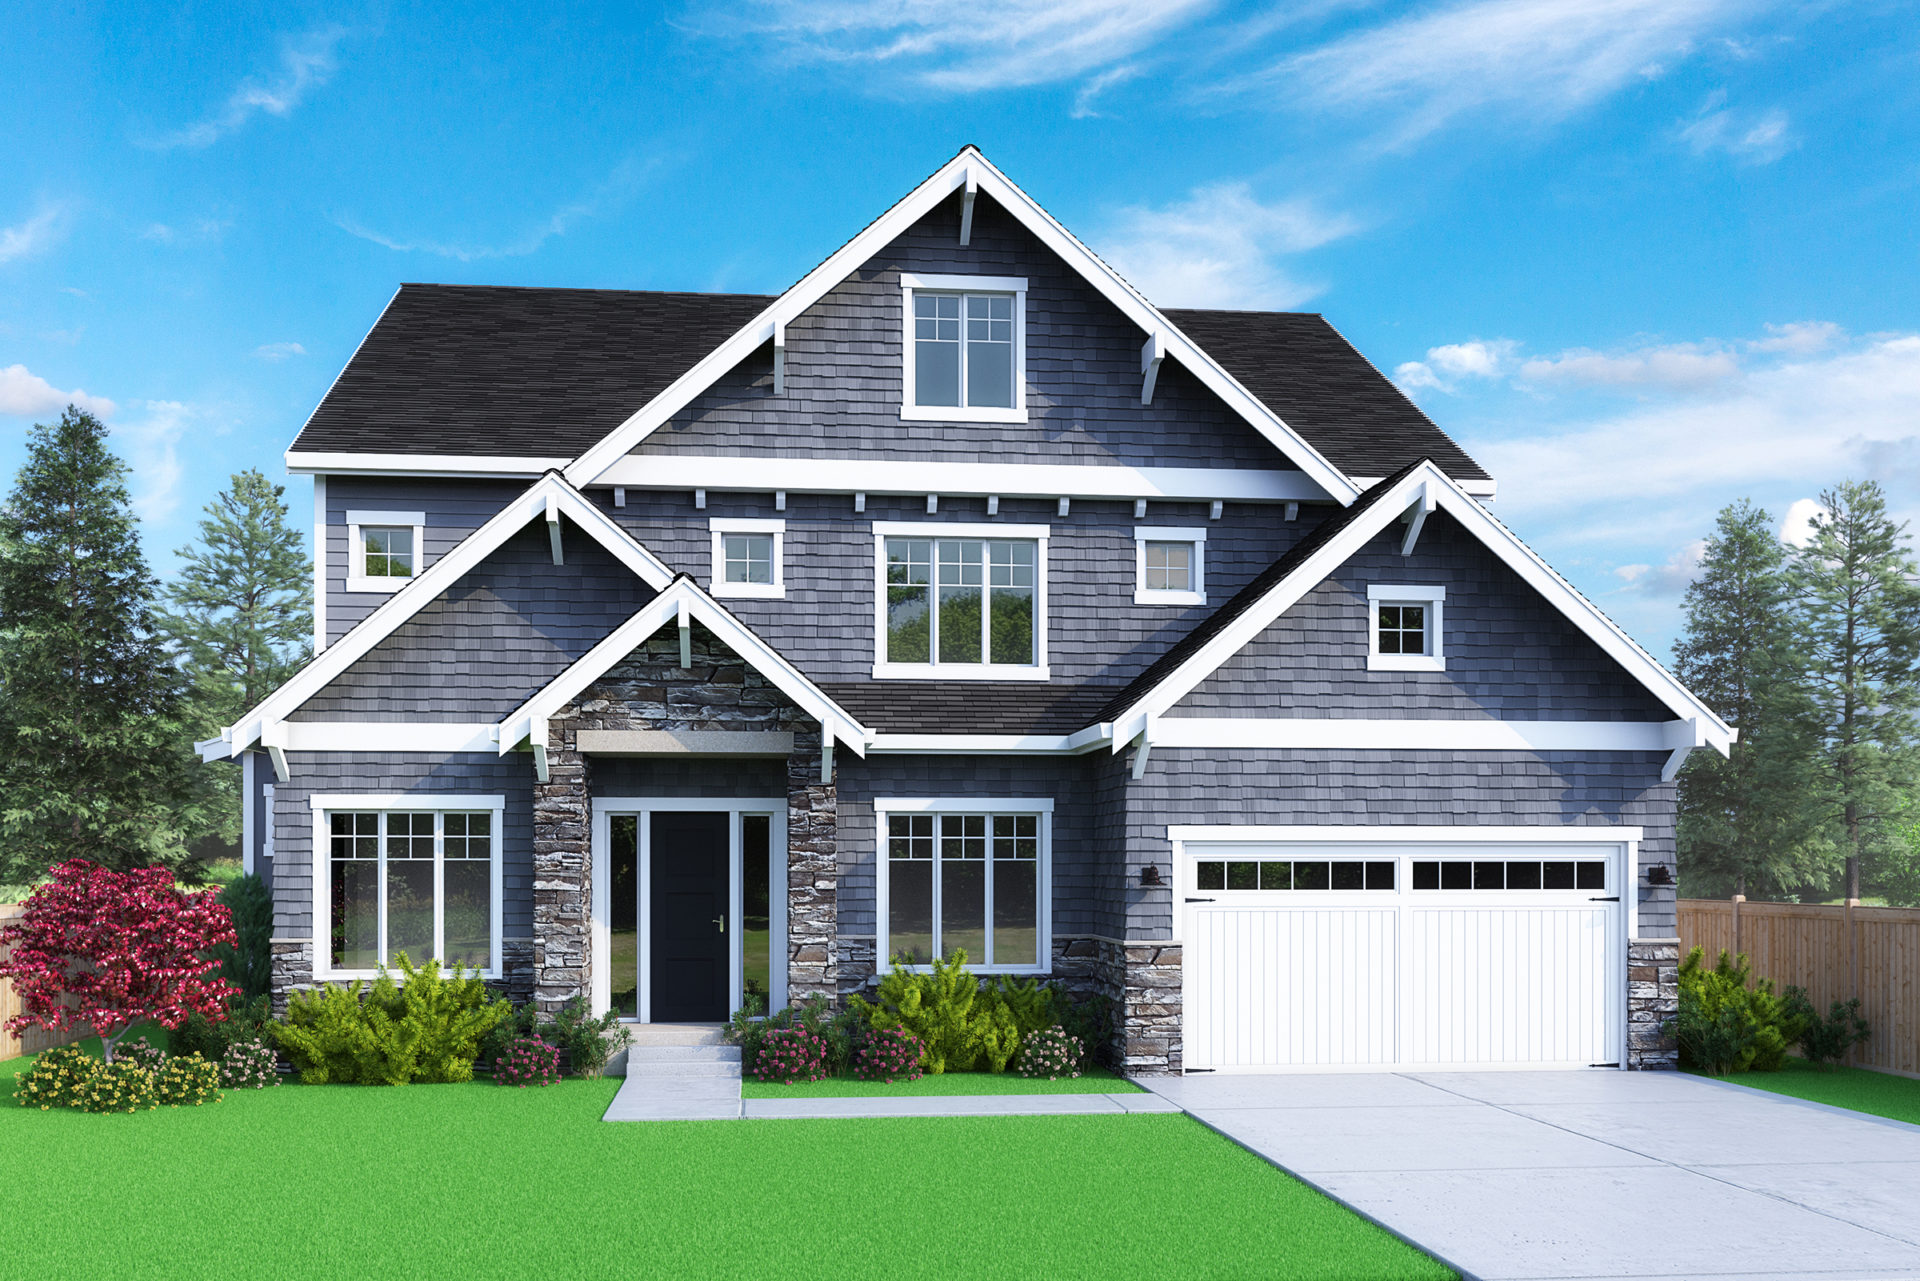 View our new luxury home construction on 2511 105th Ave NE, in Bellevue, WA from MN Custom Homes